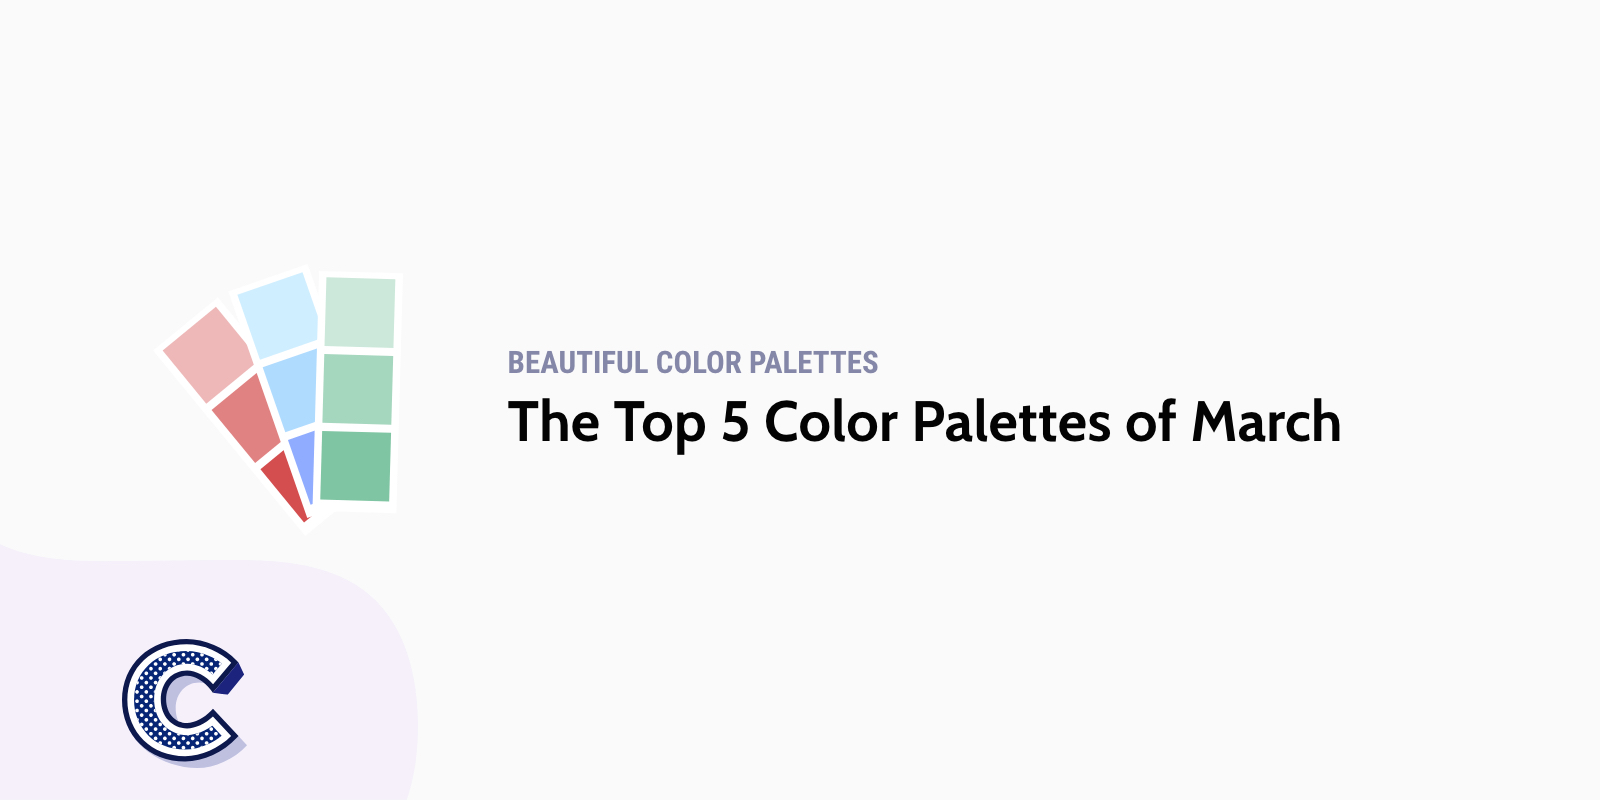 The Top 5 Color Palettes of March